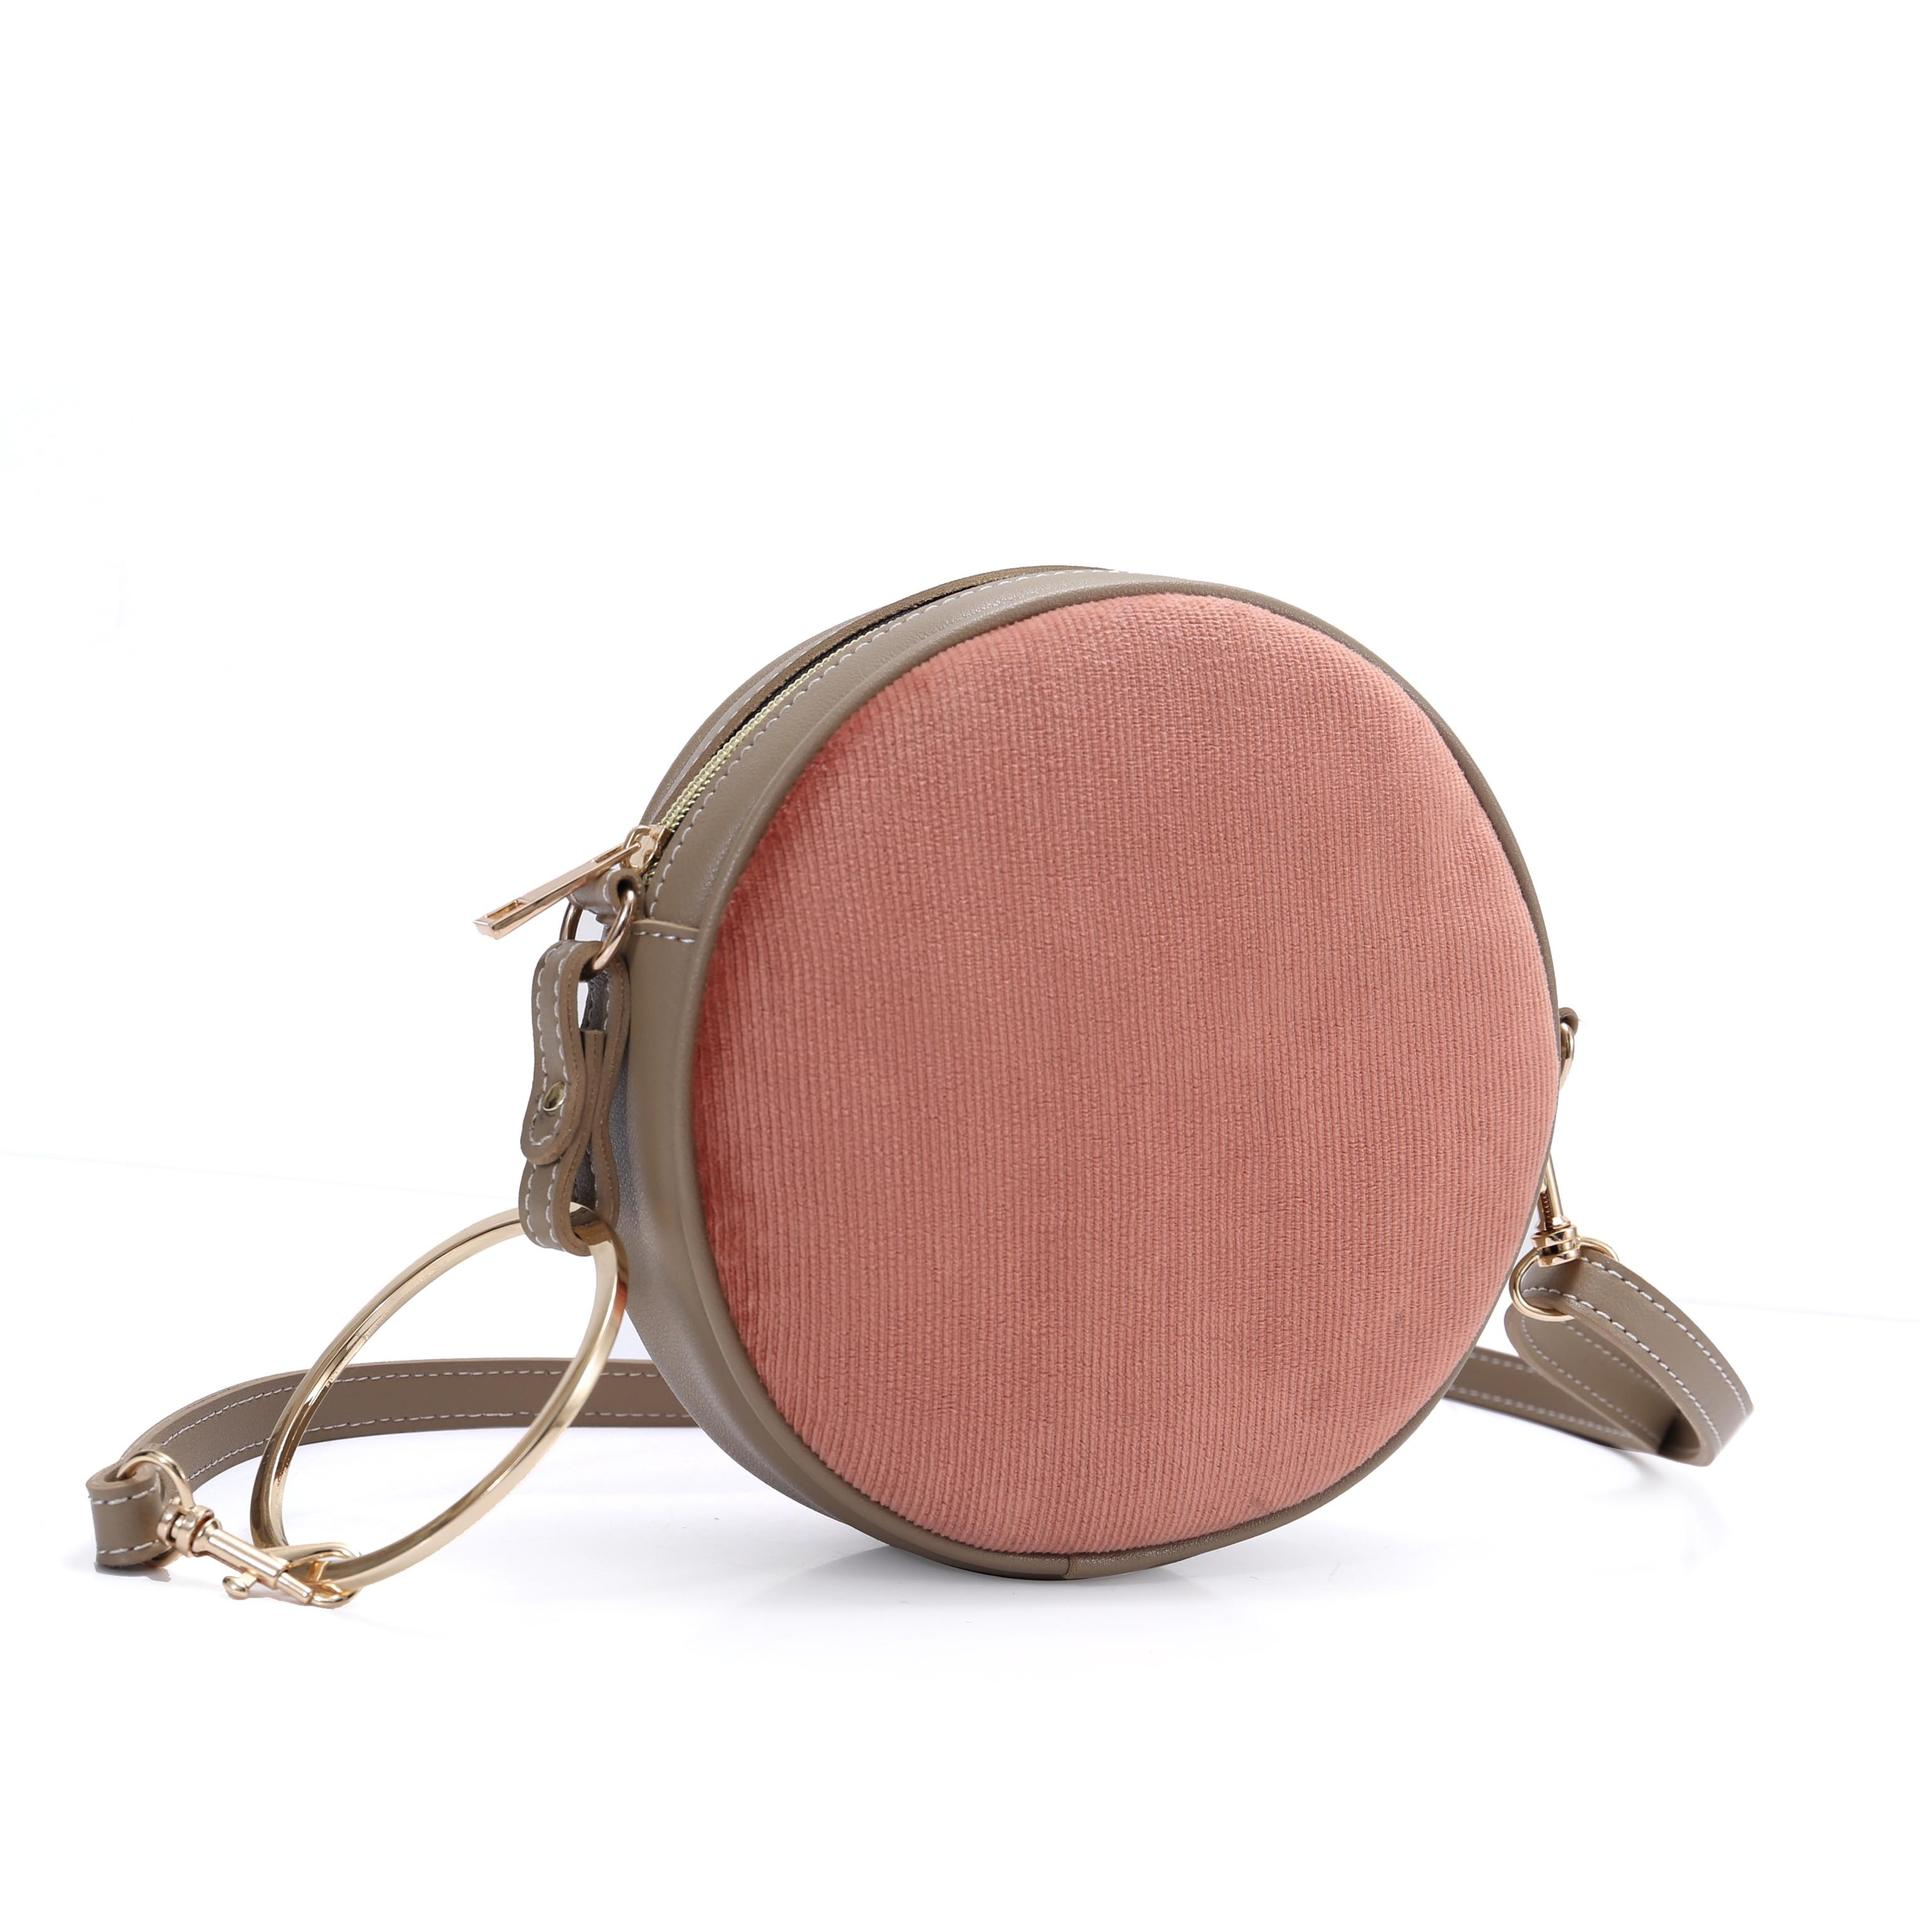 Round Shape Flannel Material Single Shoulder Bag Cross Body Bag with PU Handle